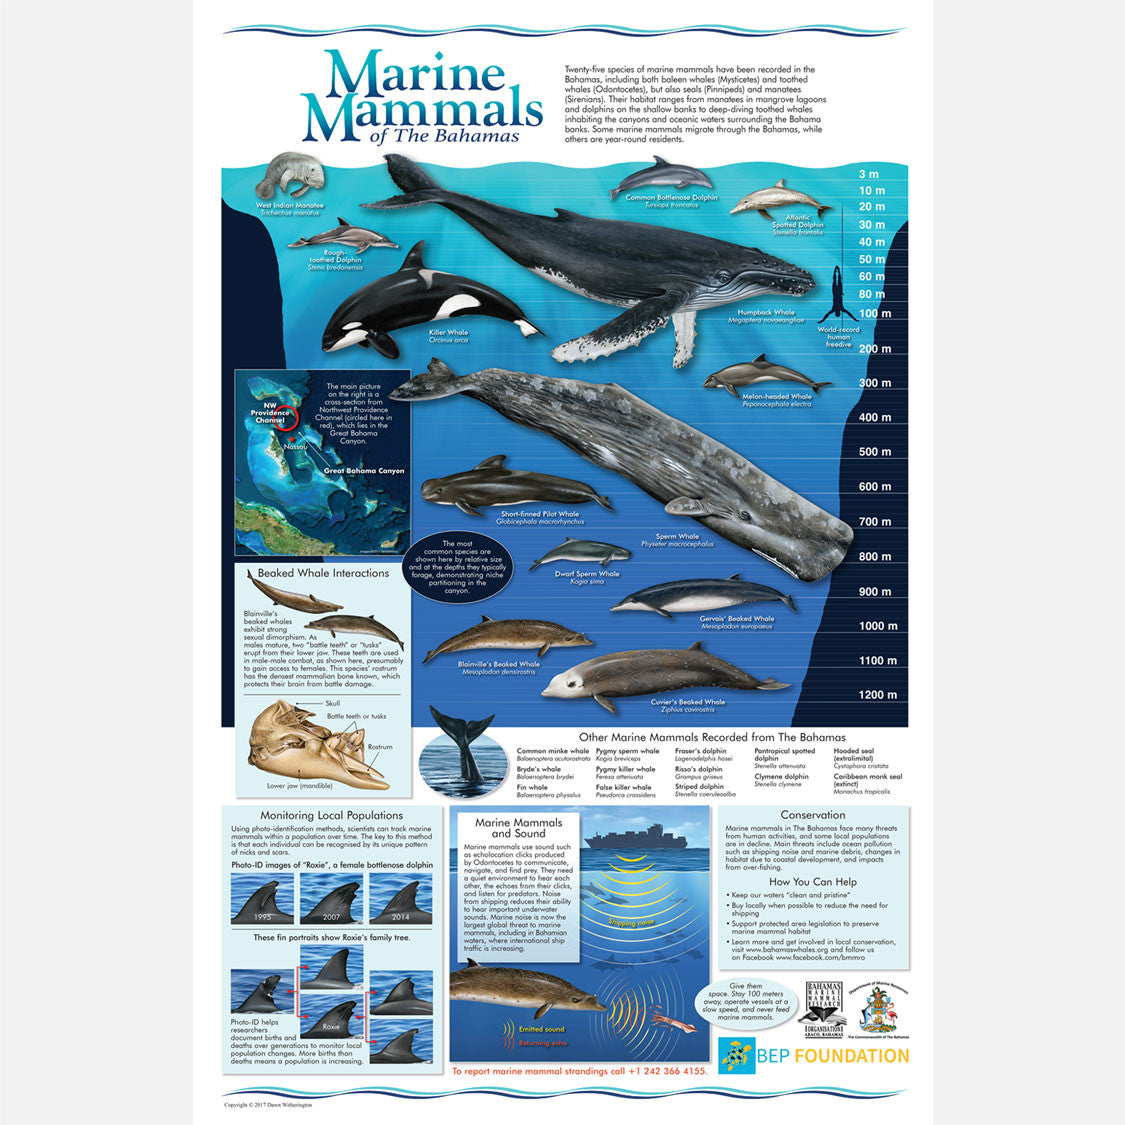 This is a beautiful informational and identification poster about marine mammals of The Bahamas.